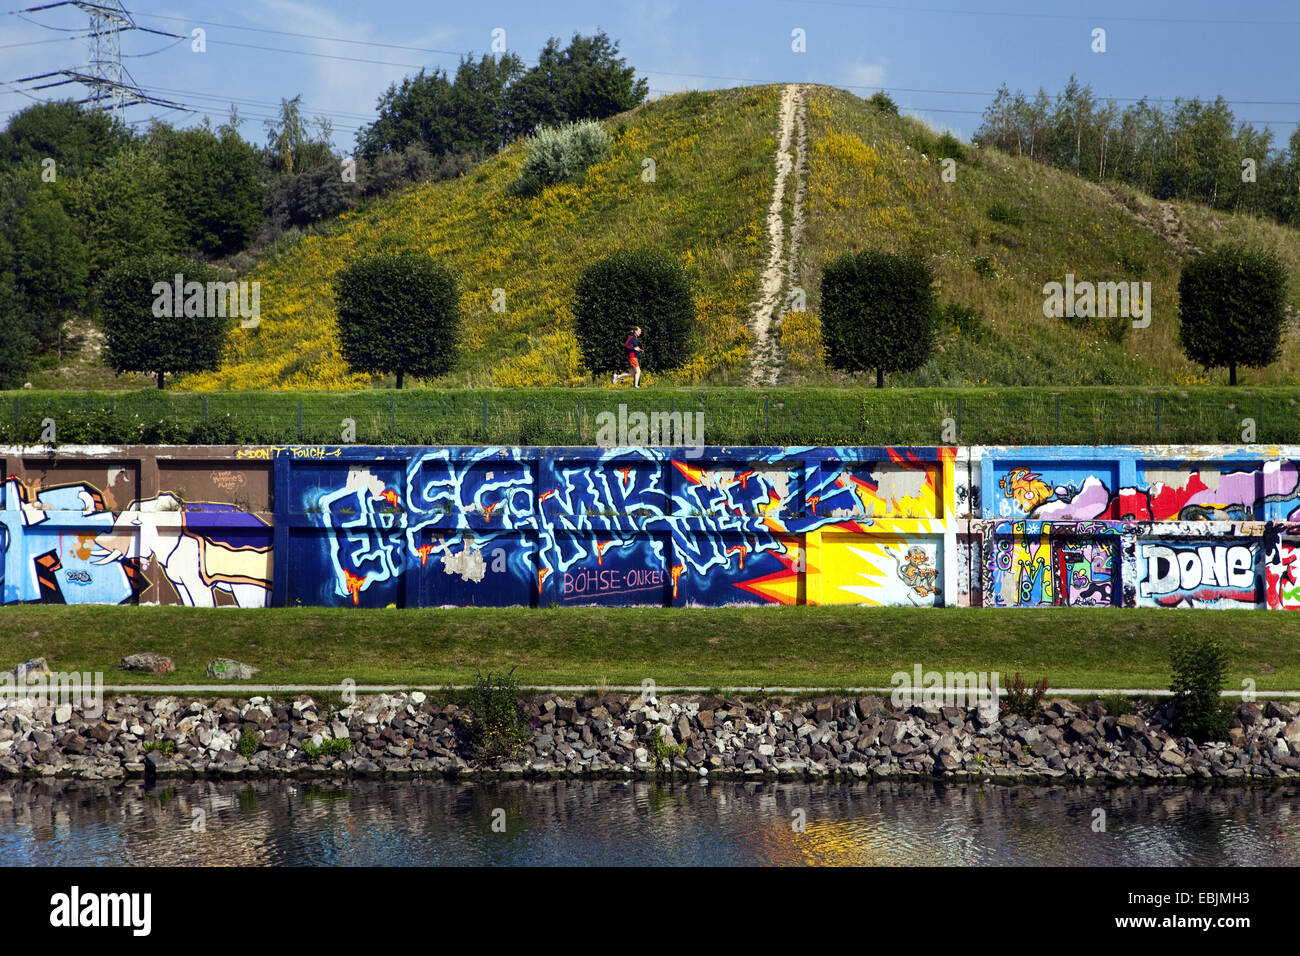 wall with graffitis at chanel Rhein Herne Kanal at Nordsternpark, Germany, North Rhine-Westphalia, Ruhr Area, Gelsenkirchen - Stock Image